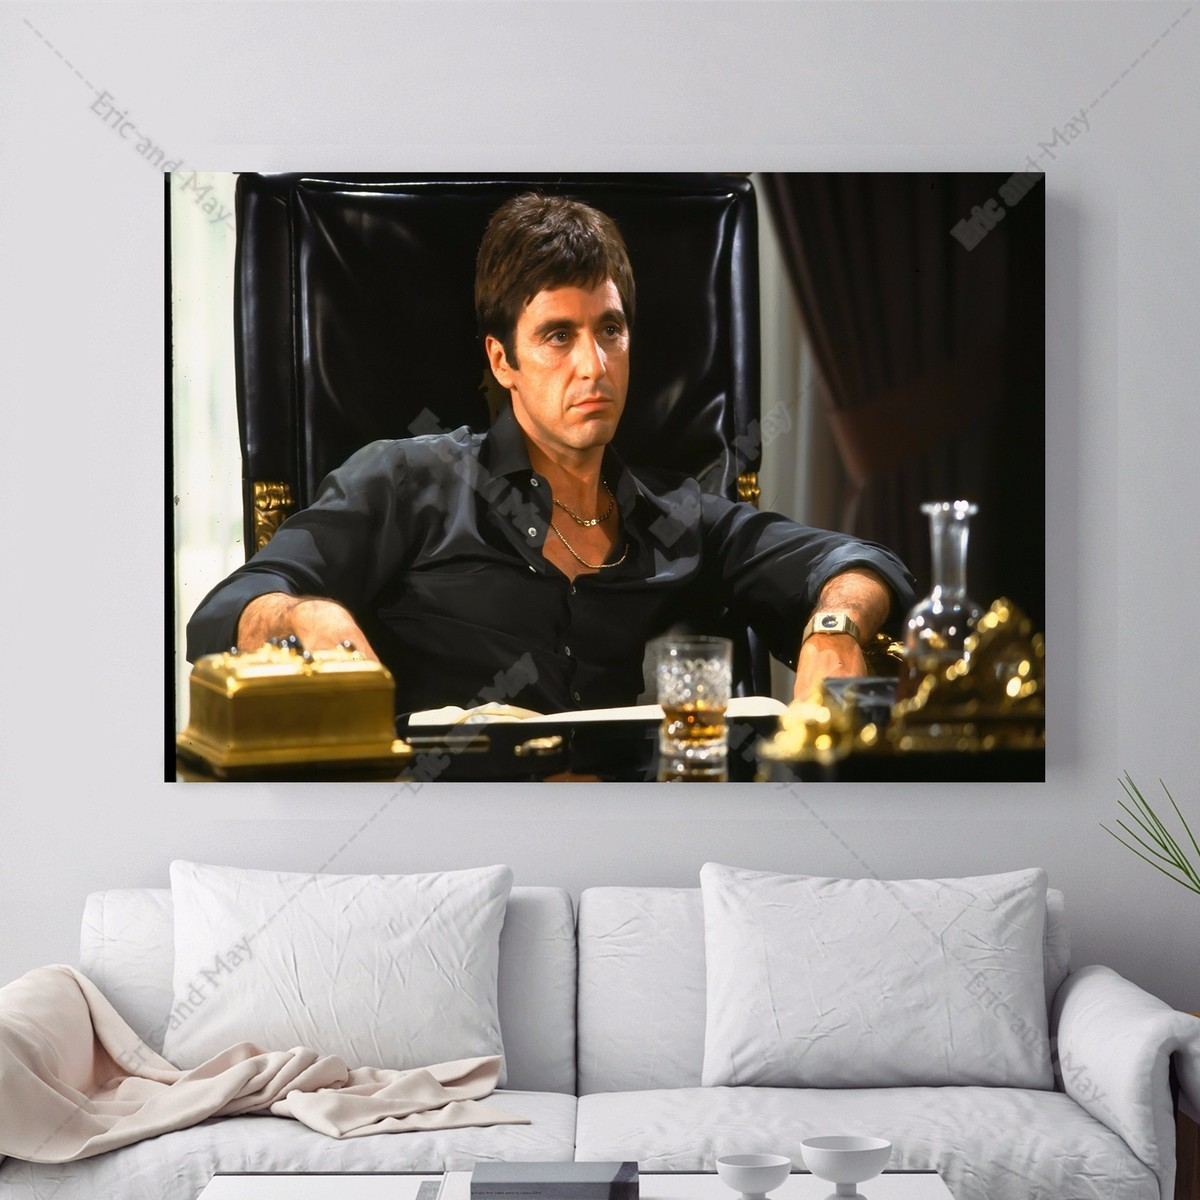 Scarface money power respect vinyl wall decal for home decore - Scarface Movie Artwork Canvas Art Print Painting Poster Wall Picture For Living Room Home Decorative Bedroom Decor No Frame